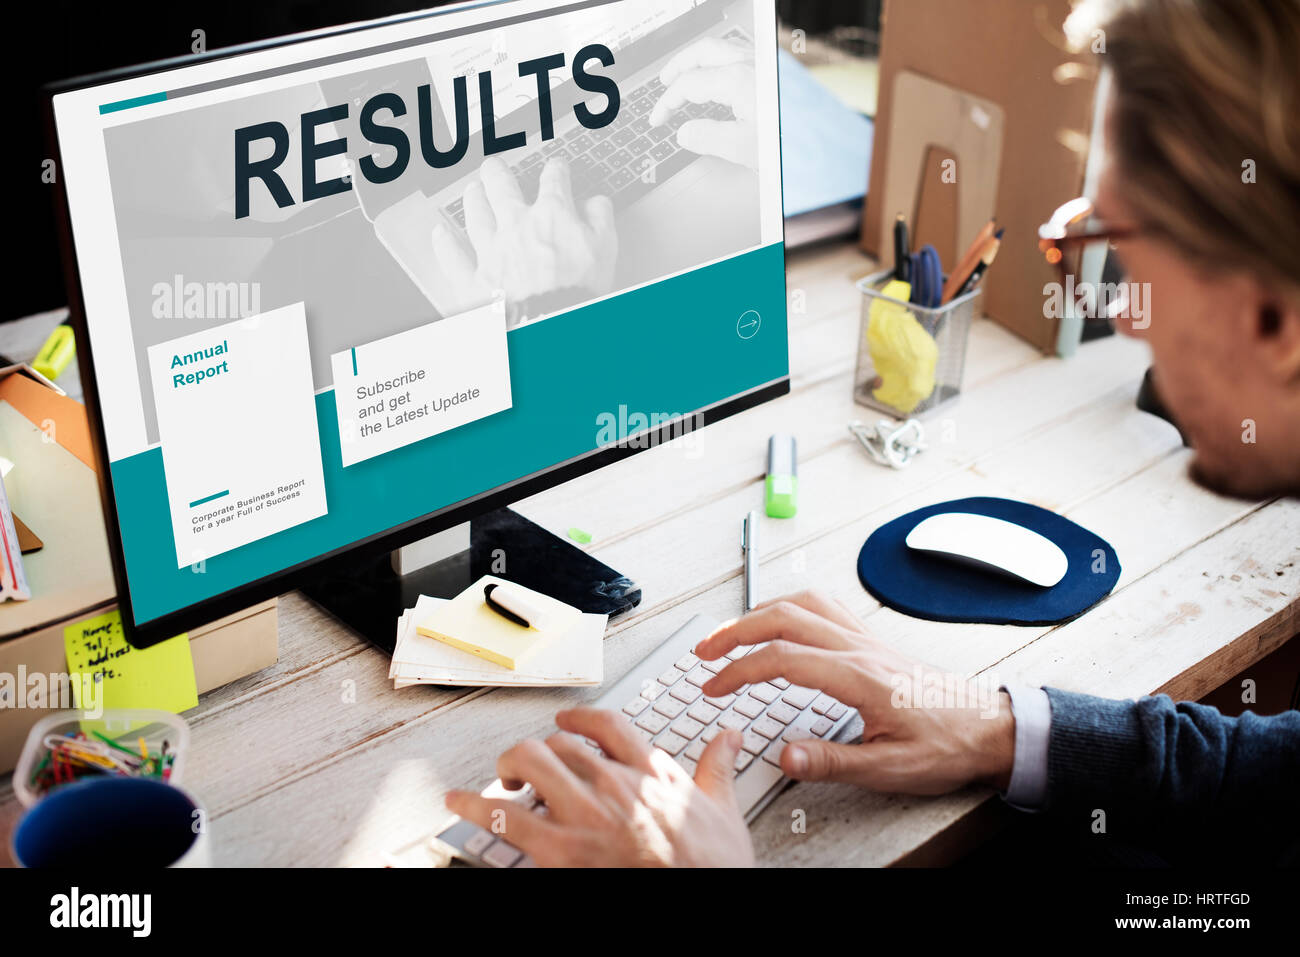 Results Statistic Research Data Analysis Concept - Stock Image